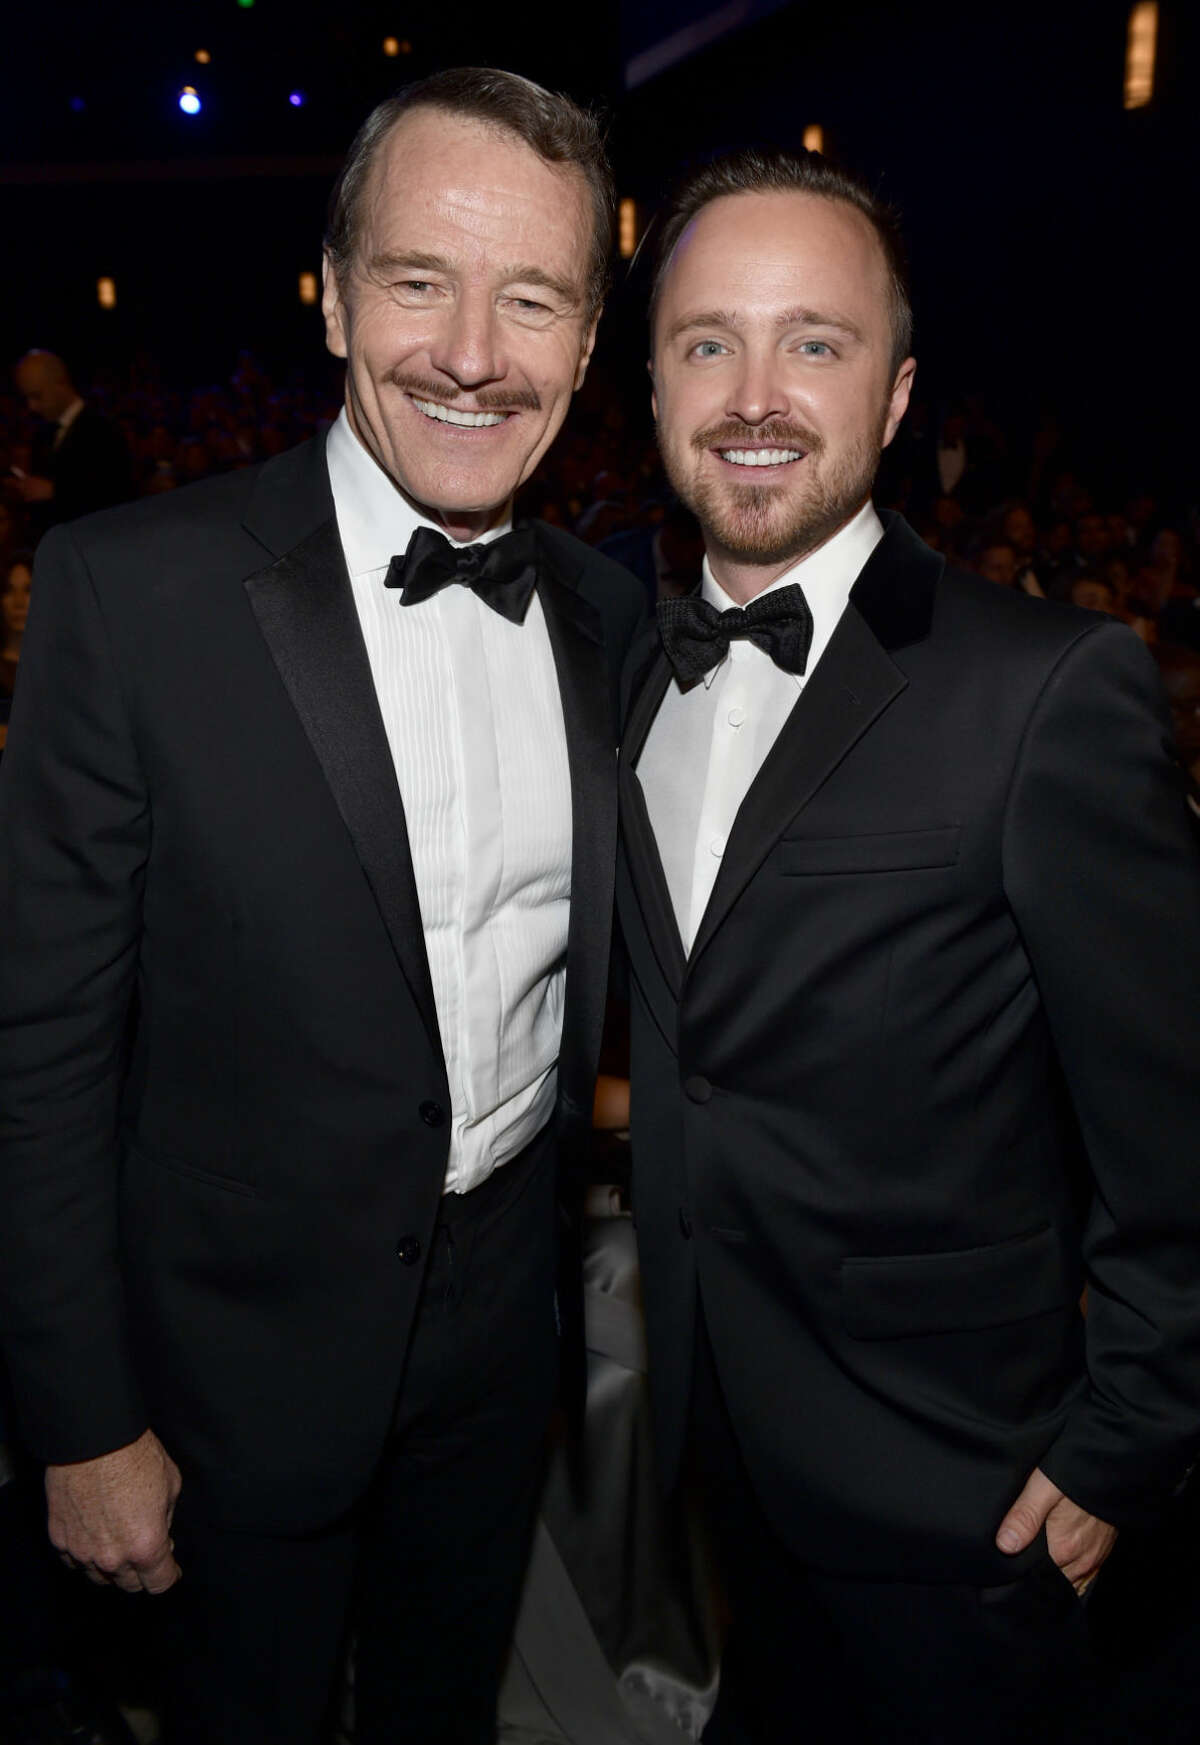 IMAGE DISTRIBUTED FOR THE TELEVISION ACADEMY - EXCLUSIVE - Bryan Cranston and Aaron Paul pose at the 66th Primetime Emmy Awards at the Nokia Theatre L.A. Live on Monday, Aug. 25, 2014, in Los Angeles. (Photo by John Shearer/Invision for the Television Academy/AP Images)